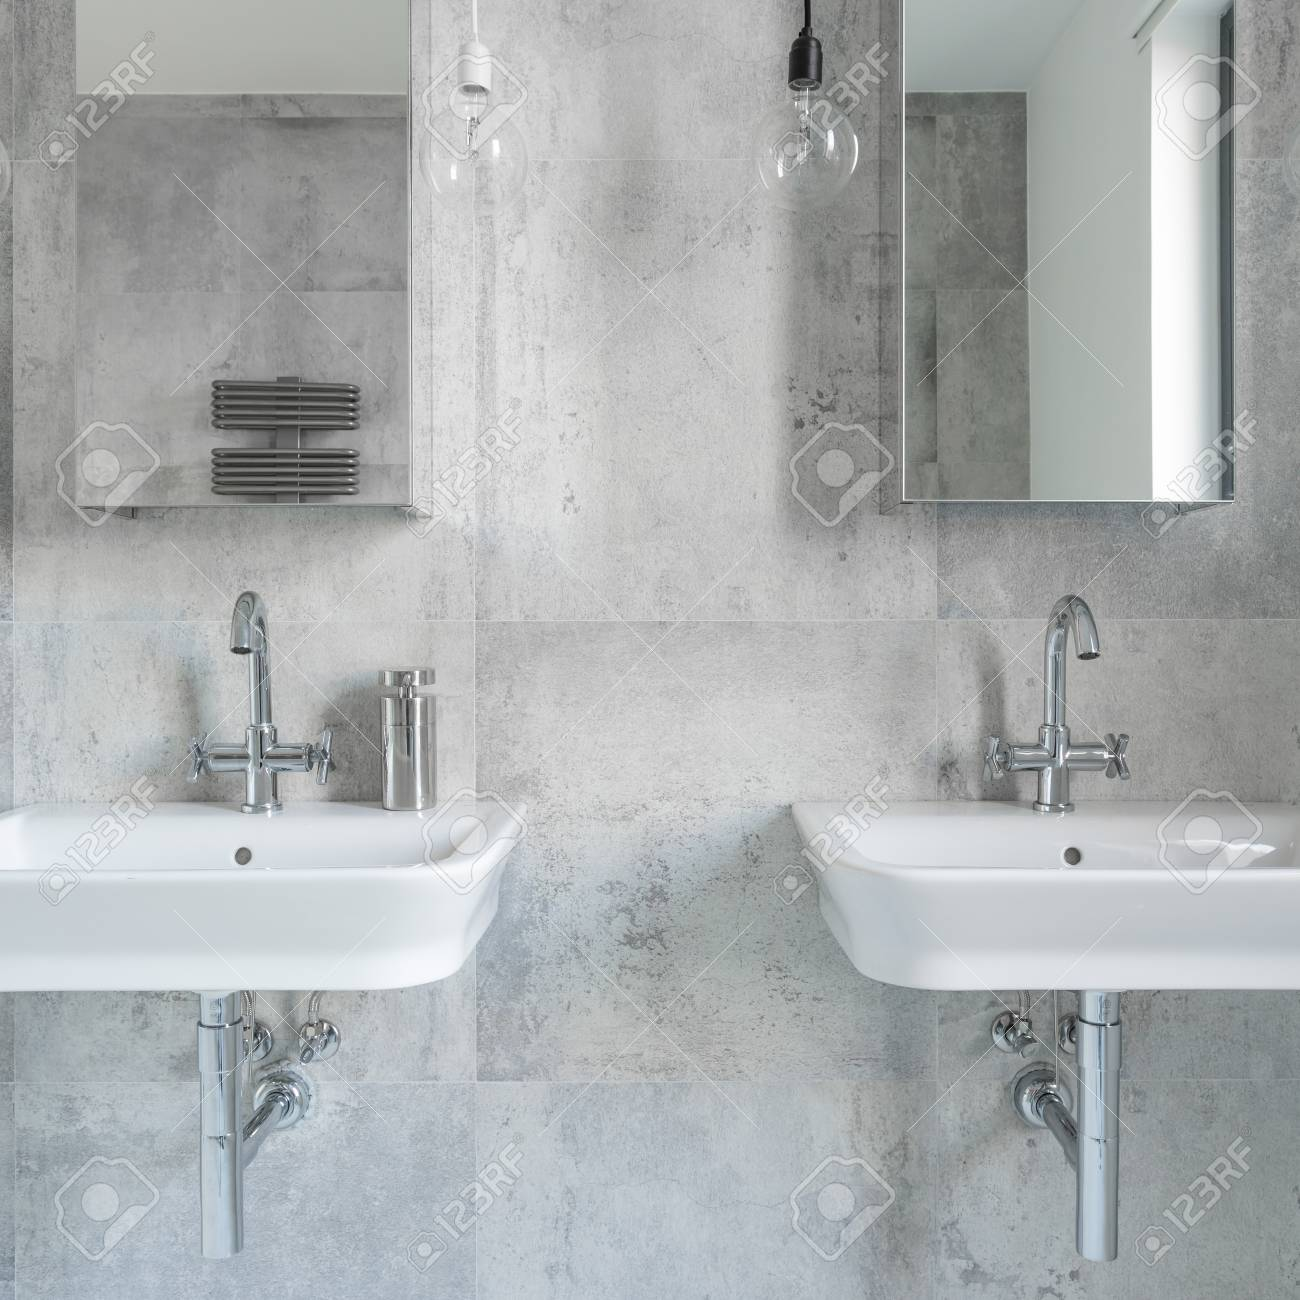 Bathroom With Mirrors Modern Bathroom With Concrete Minimalist Walls Two Sinks And